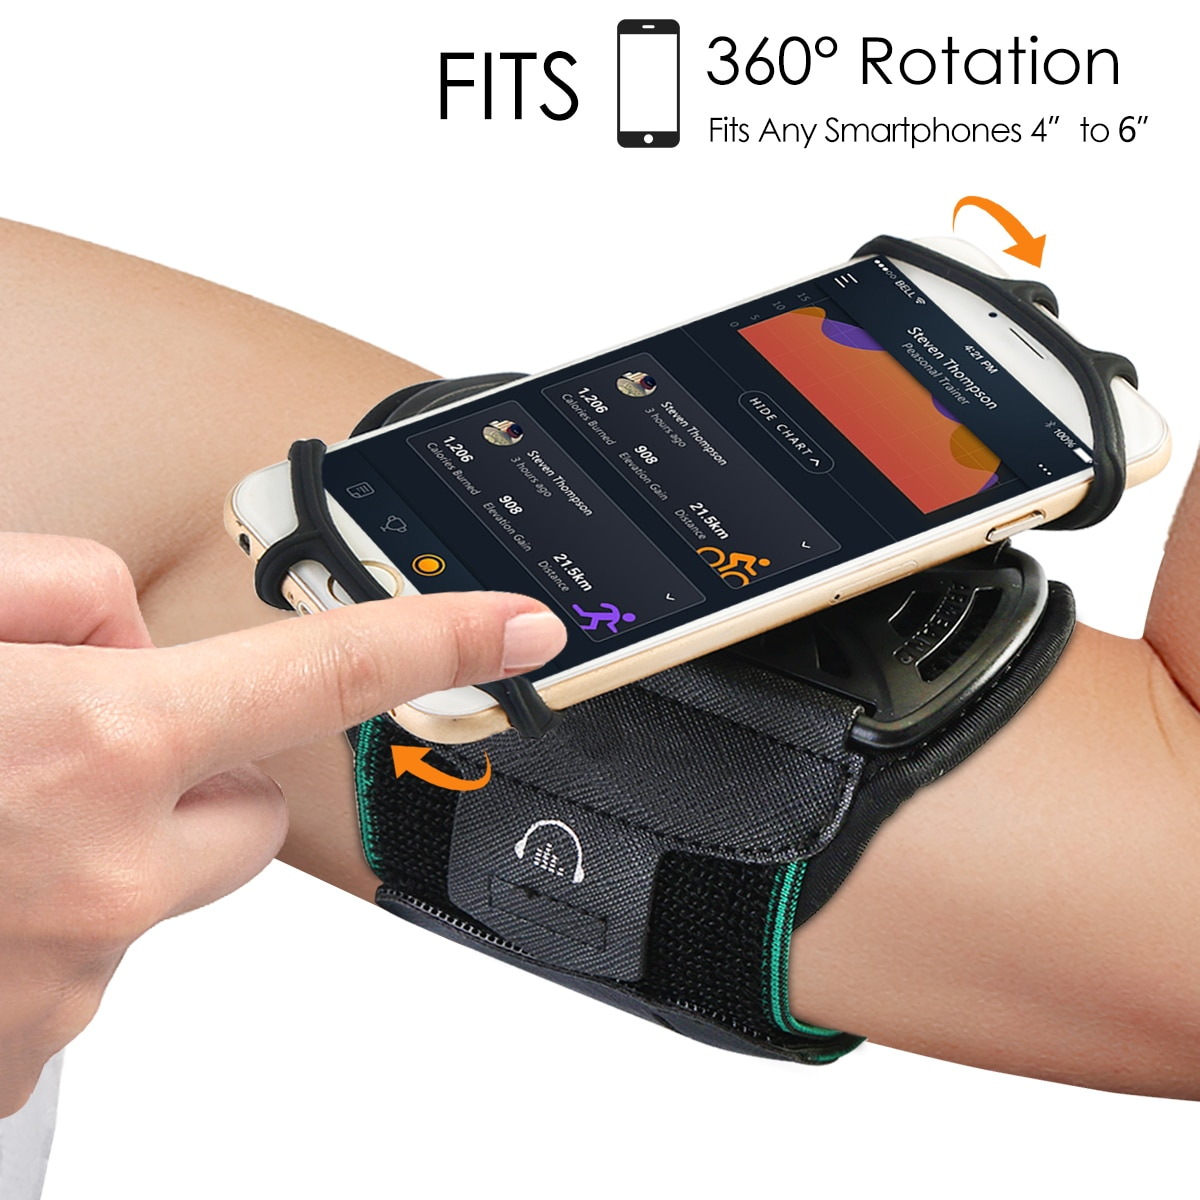 6 inch sports jogging gym armband running bag arm wrist band hand mobile phone case holder bag outdoor waterproof nylon hand bag Universal Waterproof Gym Running Sports Armband for iPhone X 8 7 Case Cover Holder Arm Band Wrist Case Bag for 4 to 6 Inch Phone